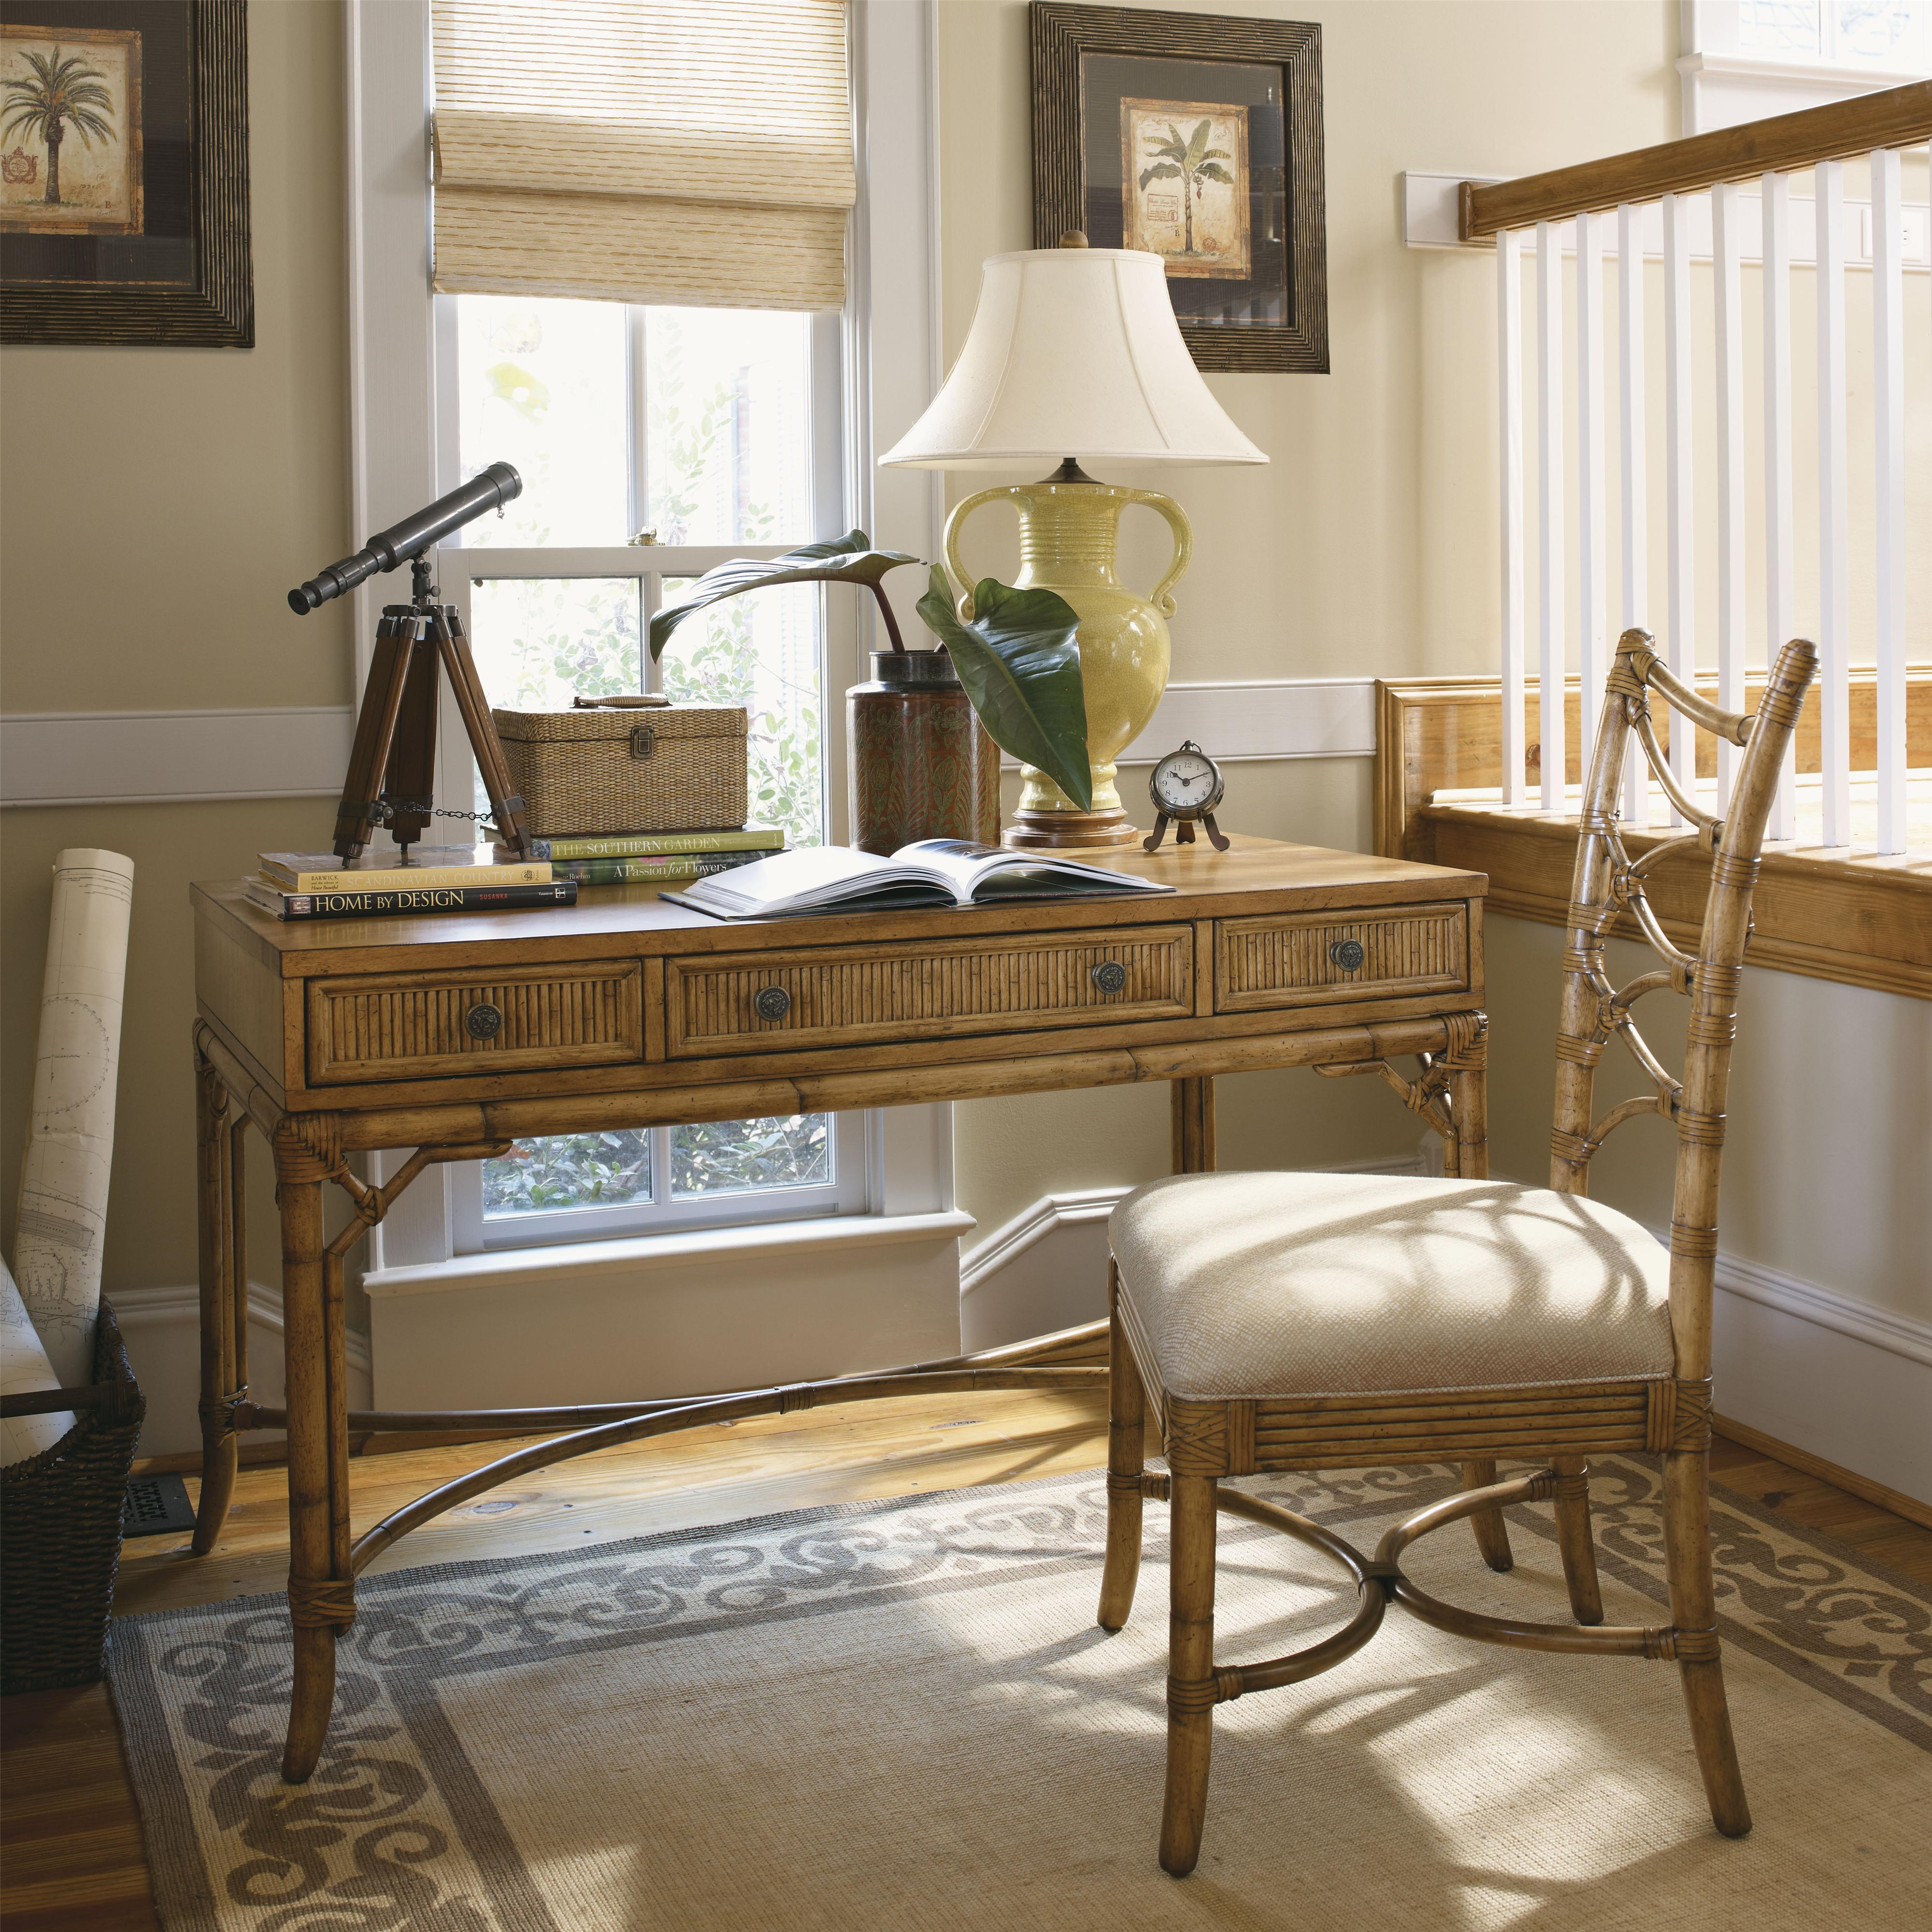 Beach house 5701 61 by tommy bahama home baer39s for Home furniture by design bahamas